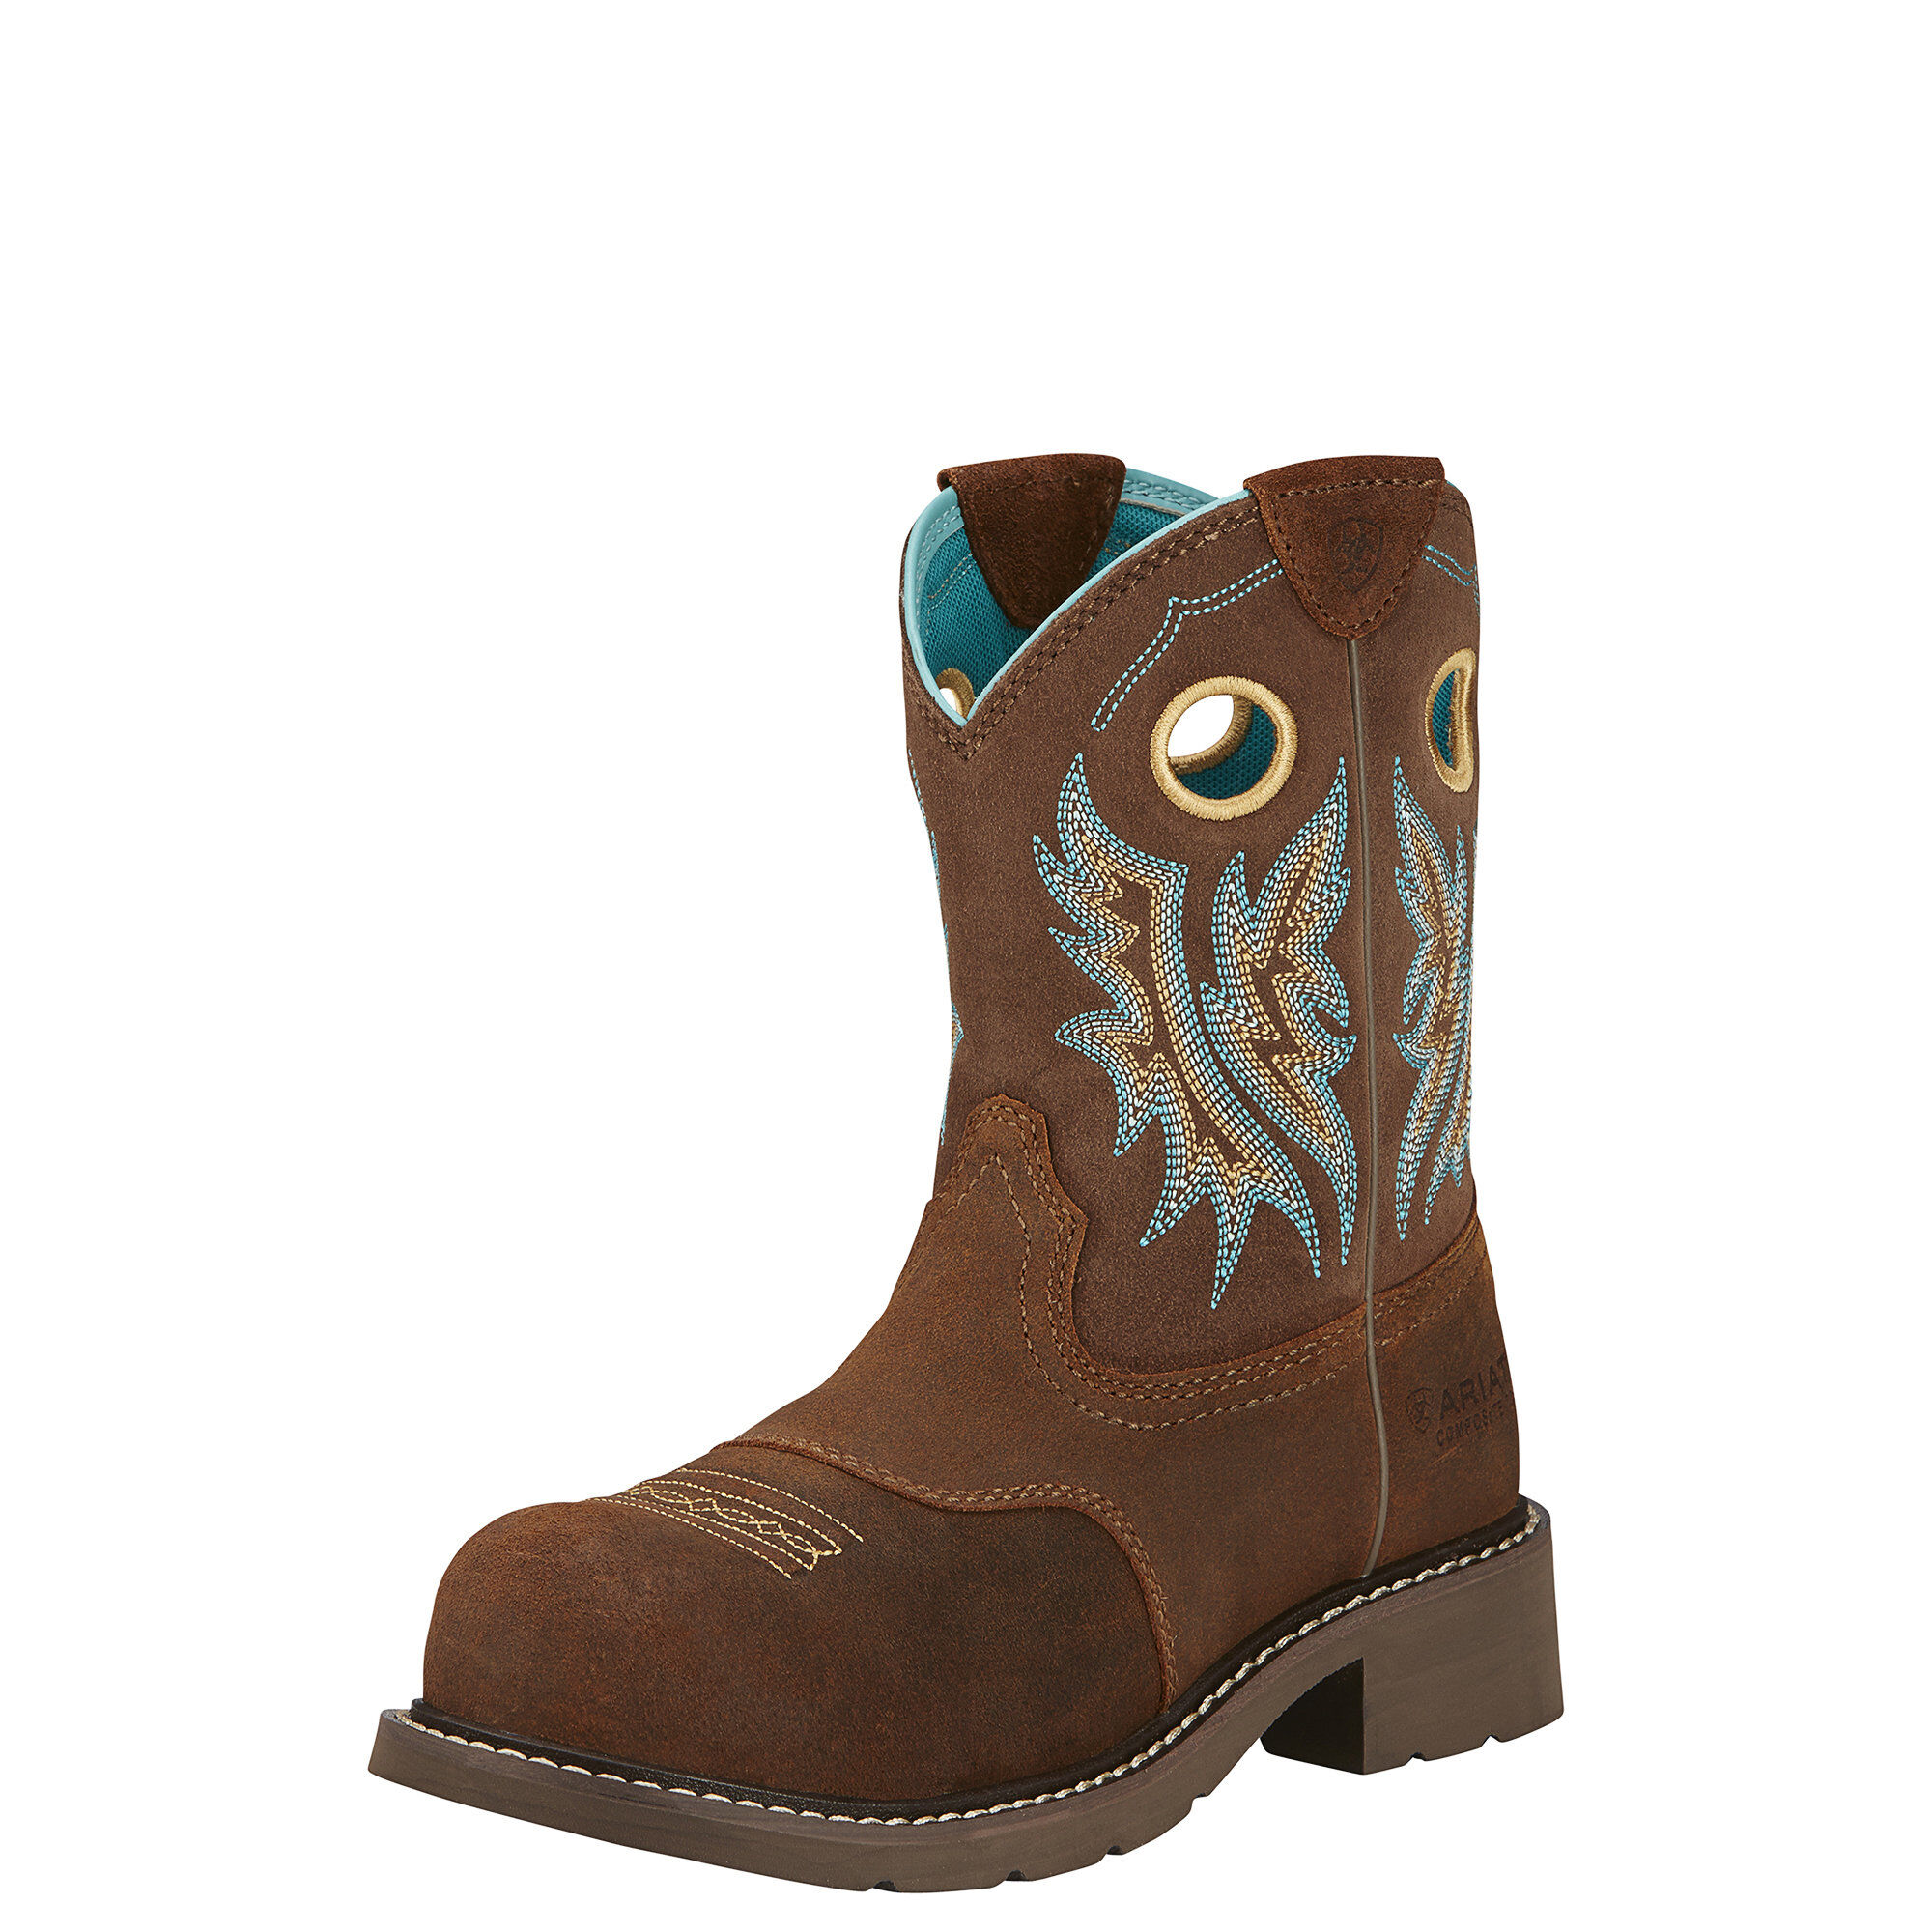 3becfadbcfd Fatbaby Cowgirl Composite Toe Work Boot